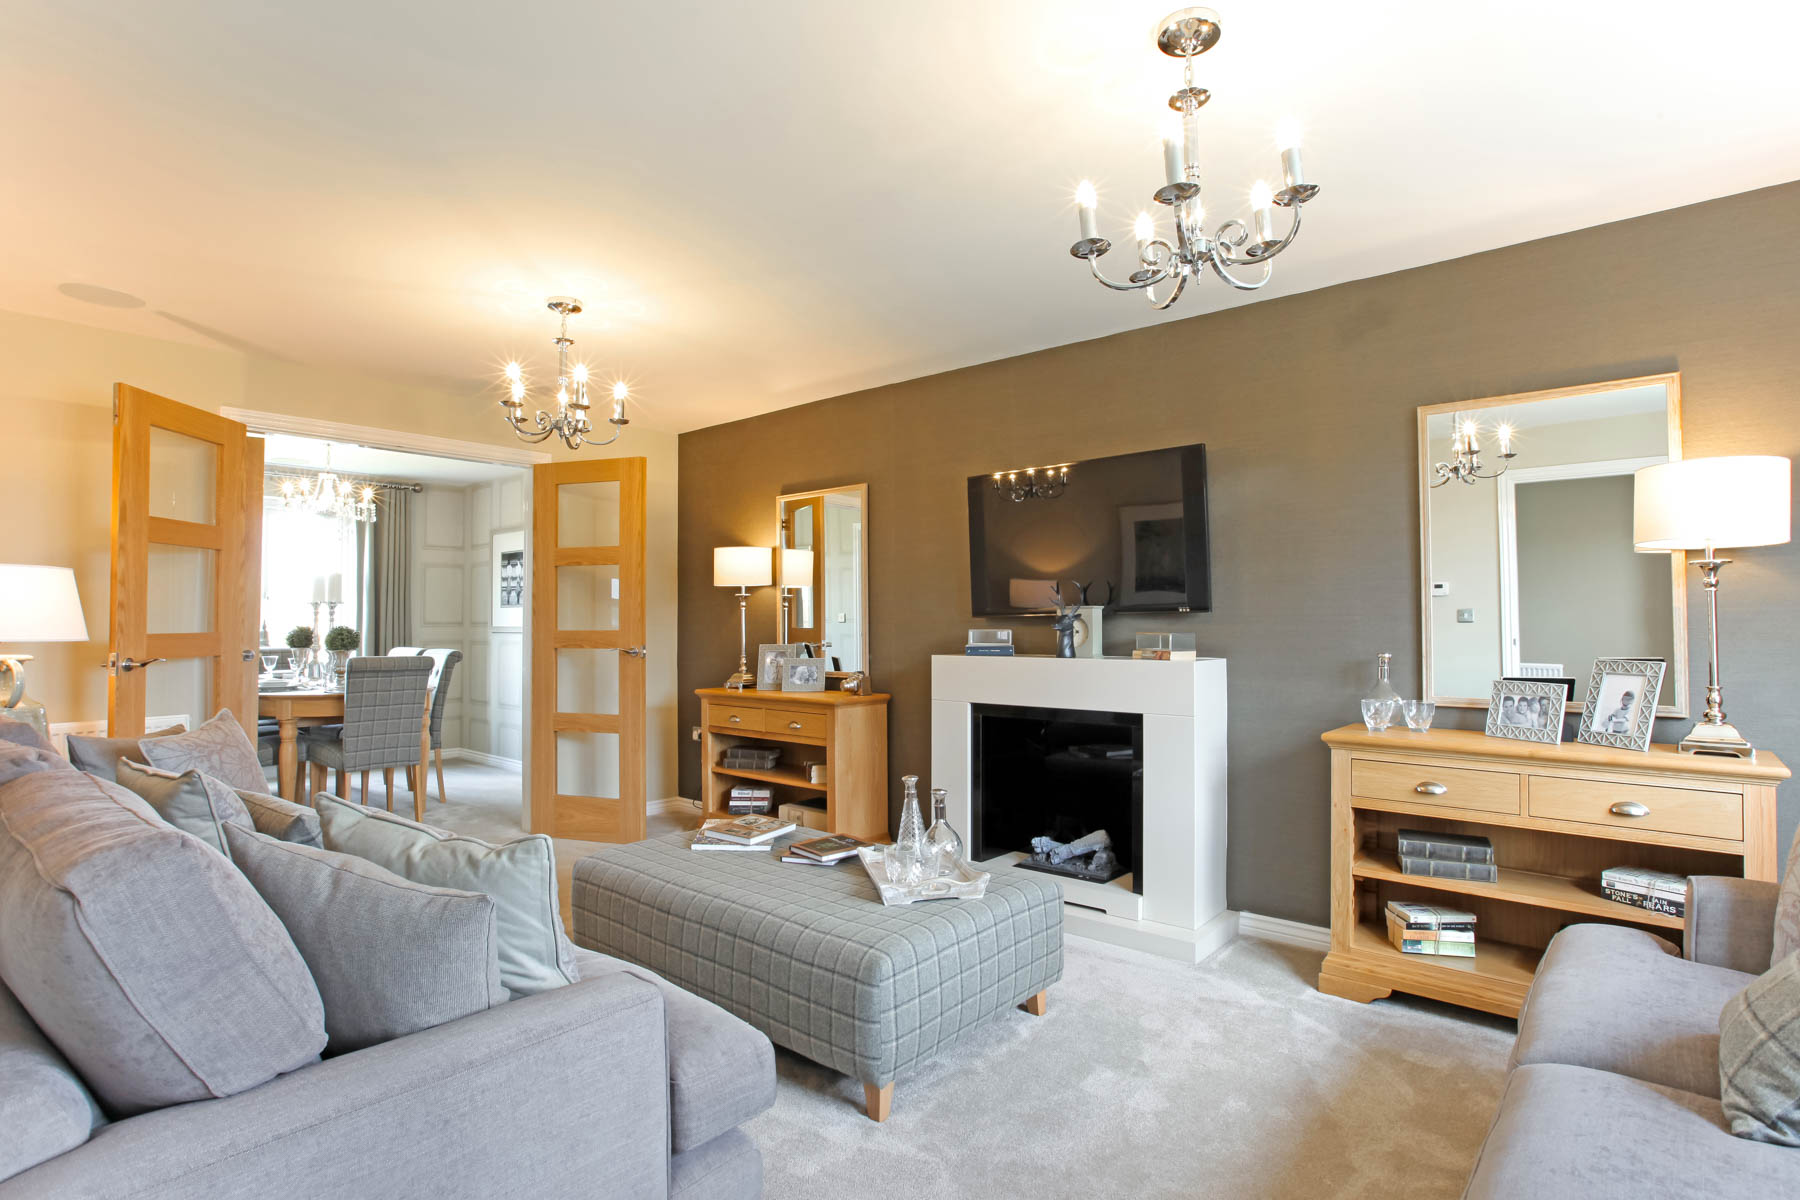 005_PW_Eynsham_Living_Room